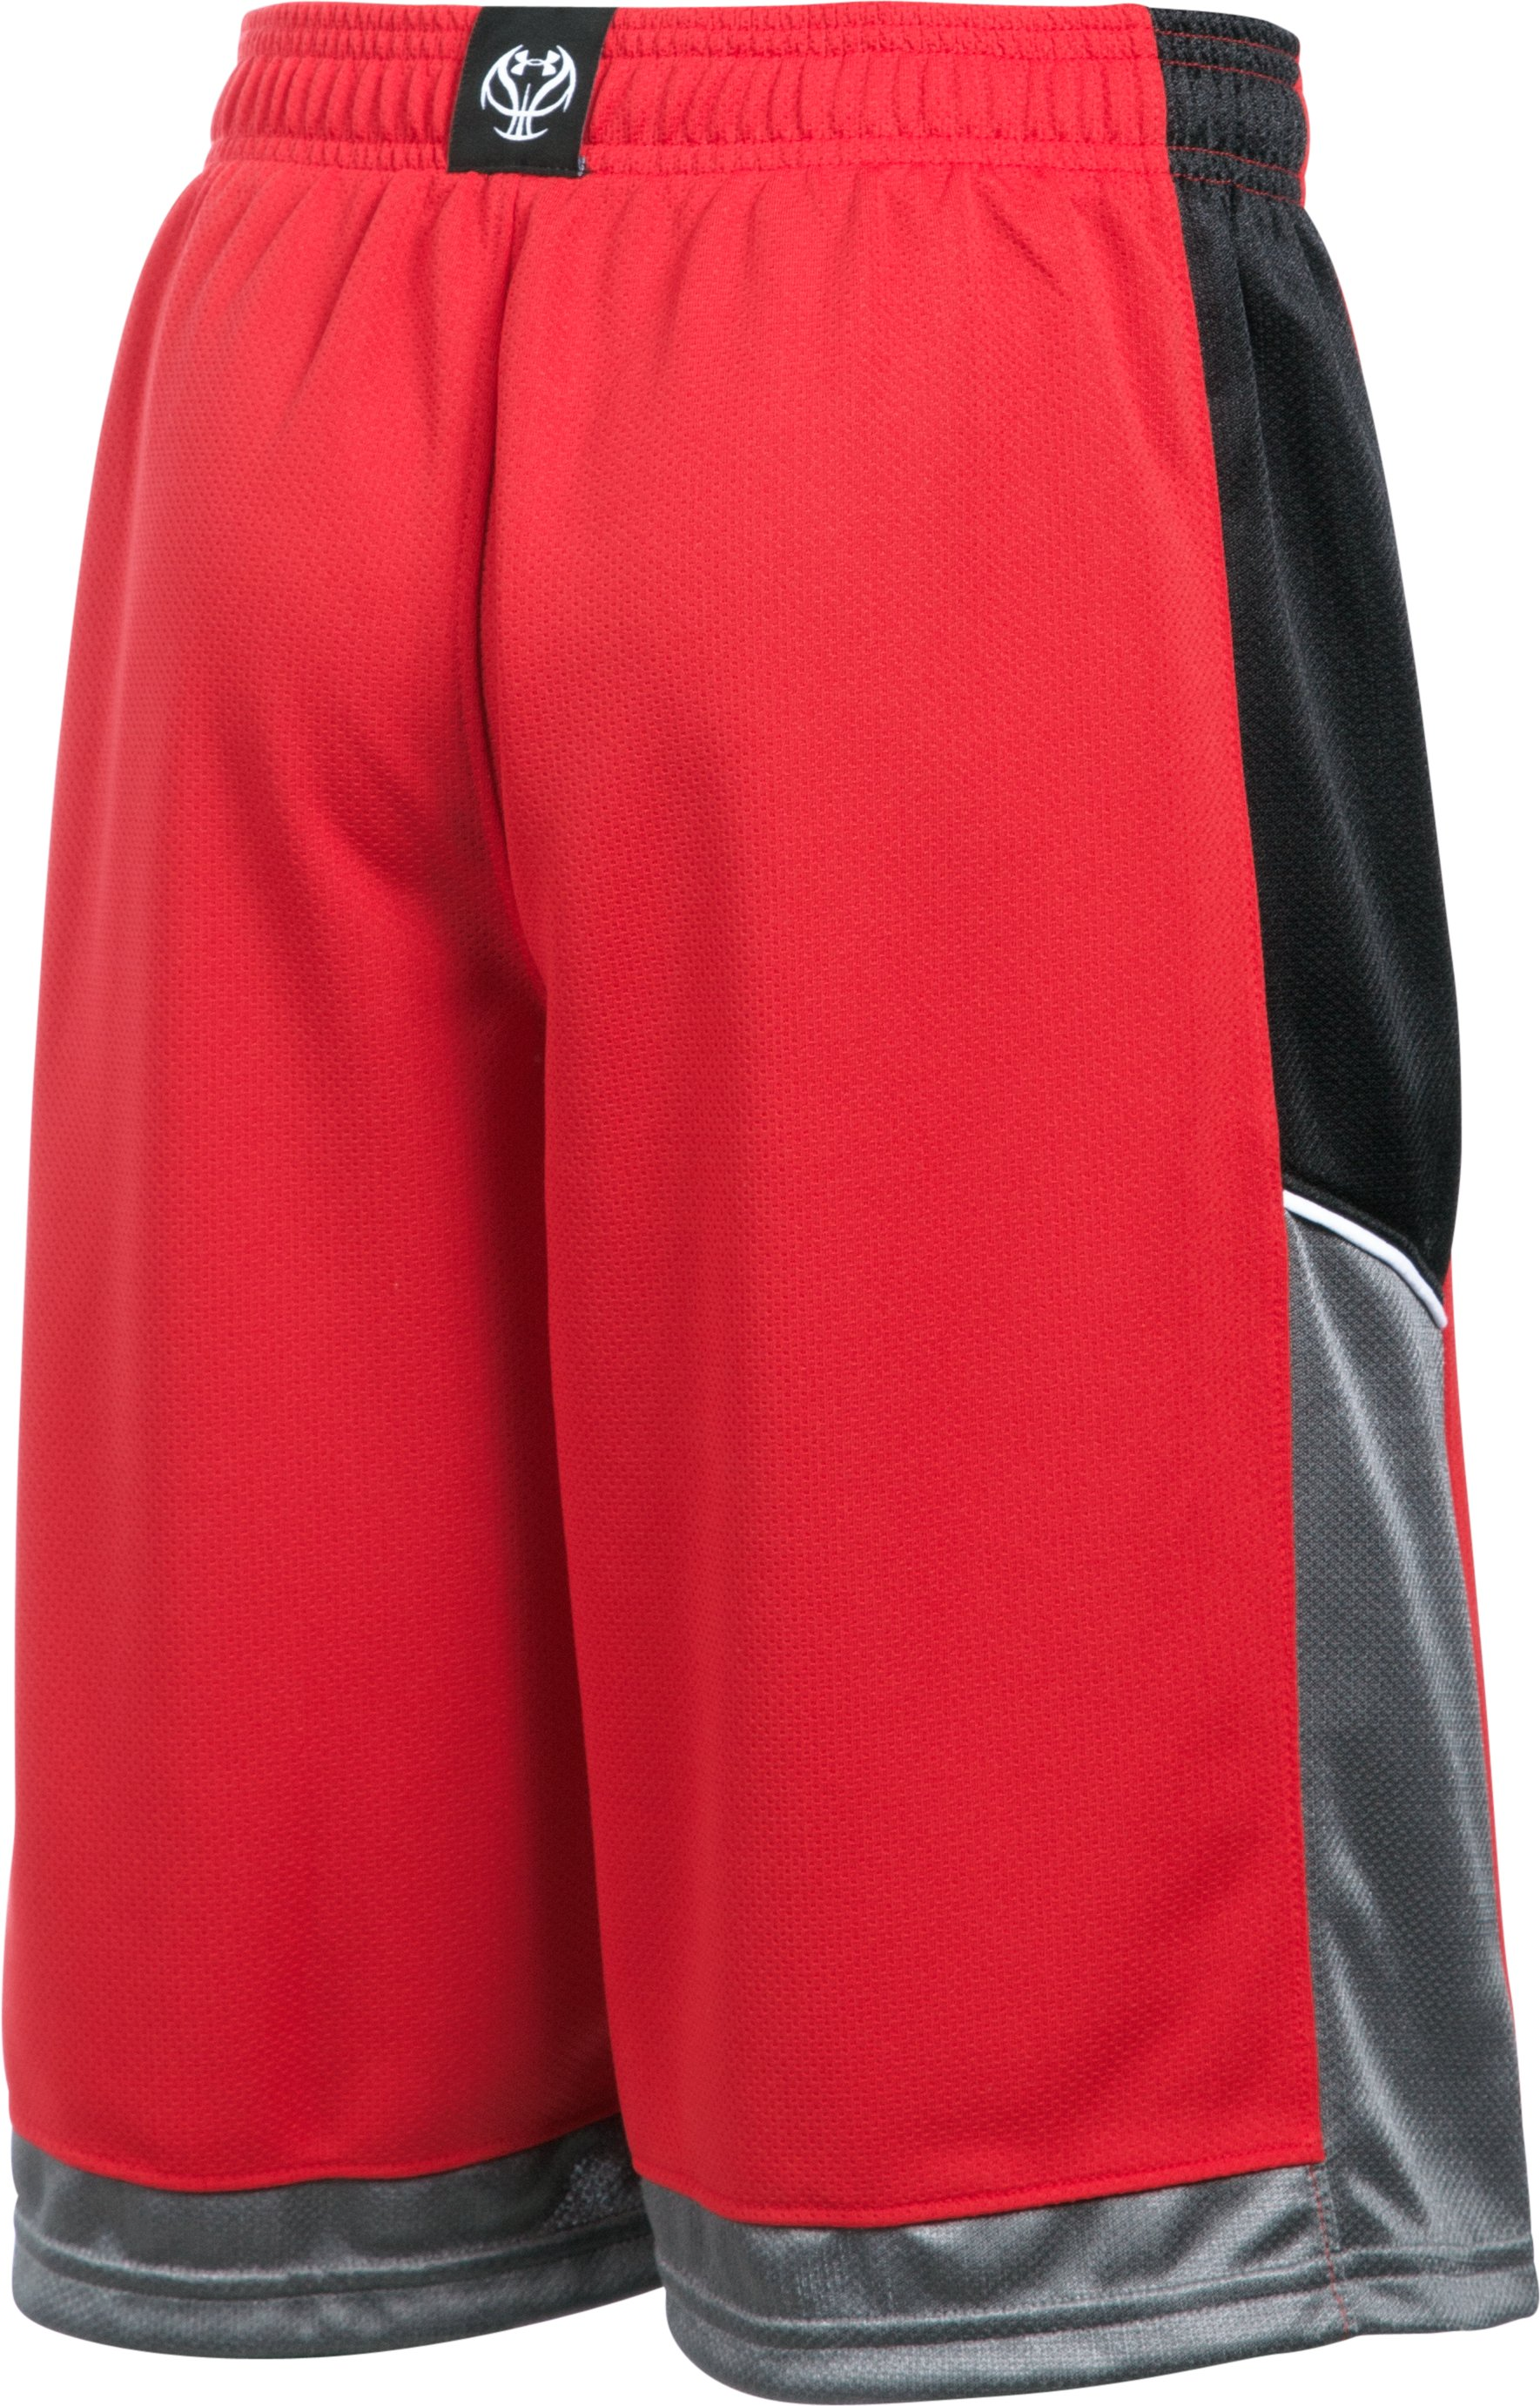 Boys' UA Baseline Basketball Shorts, Red, undefined